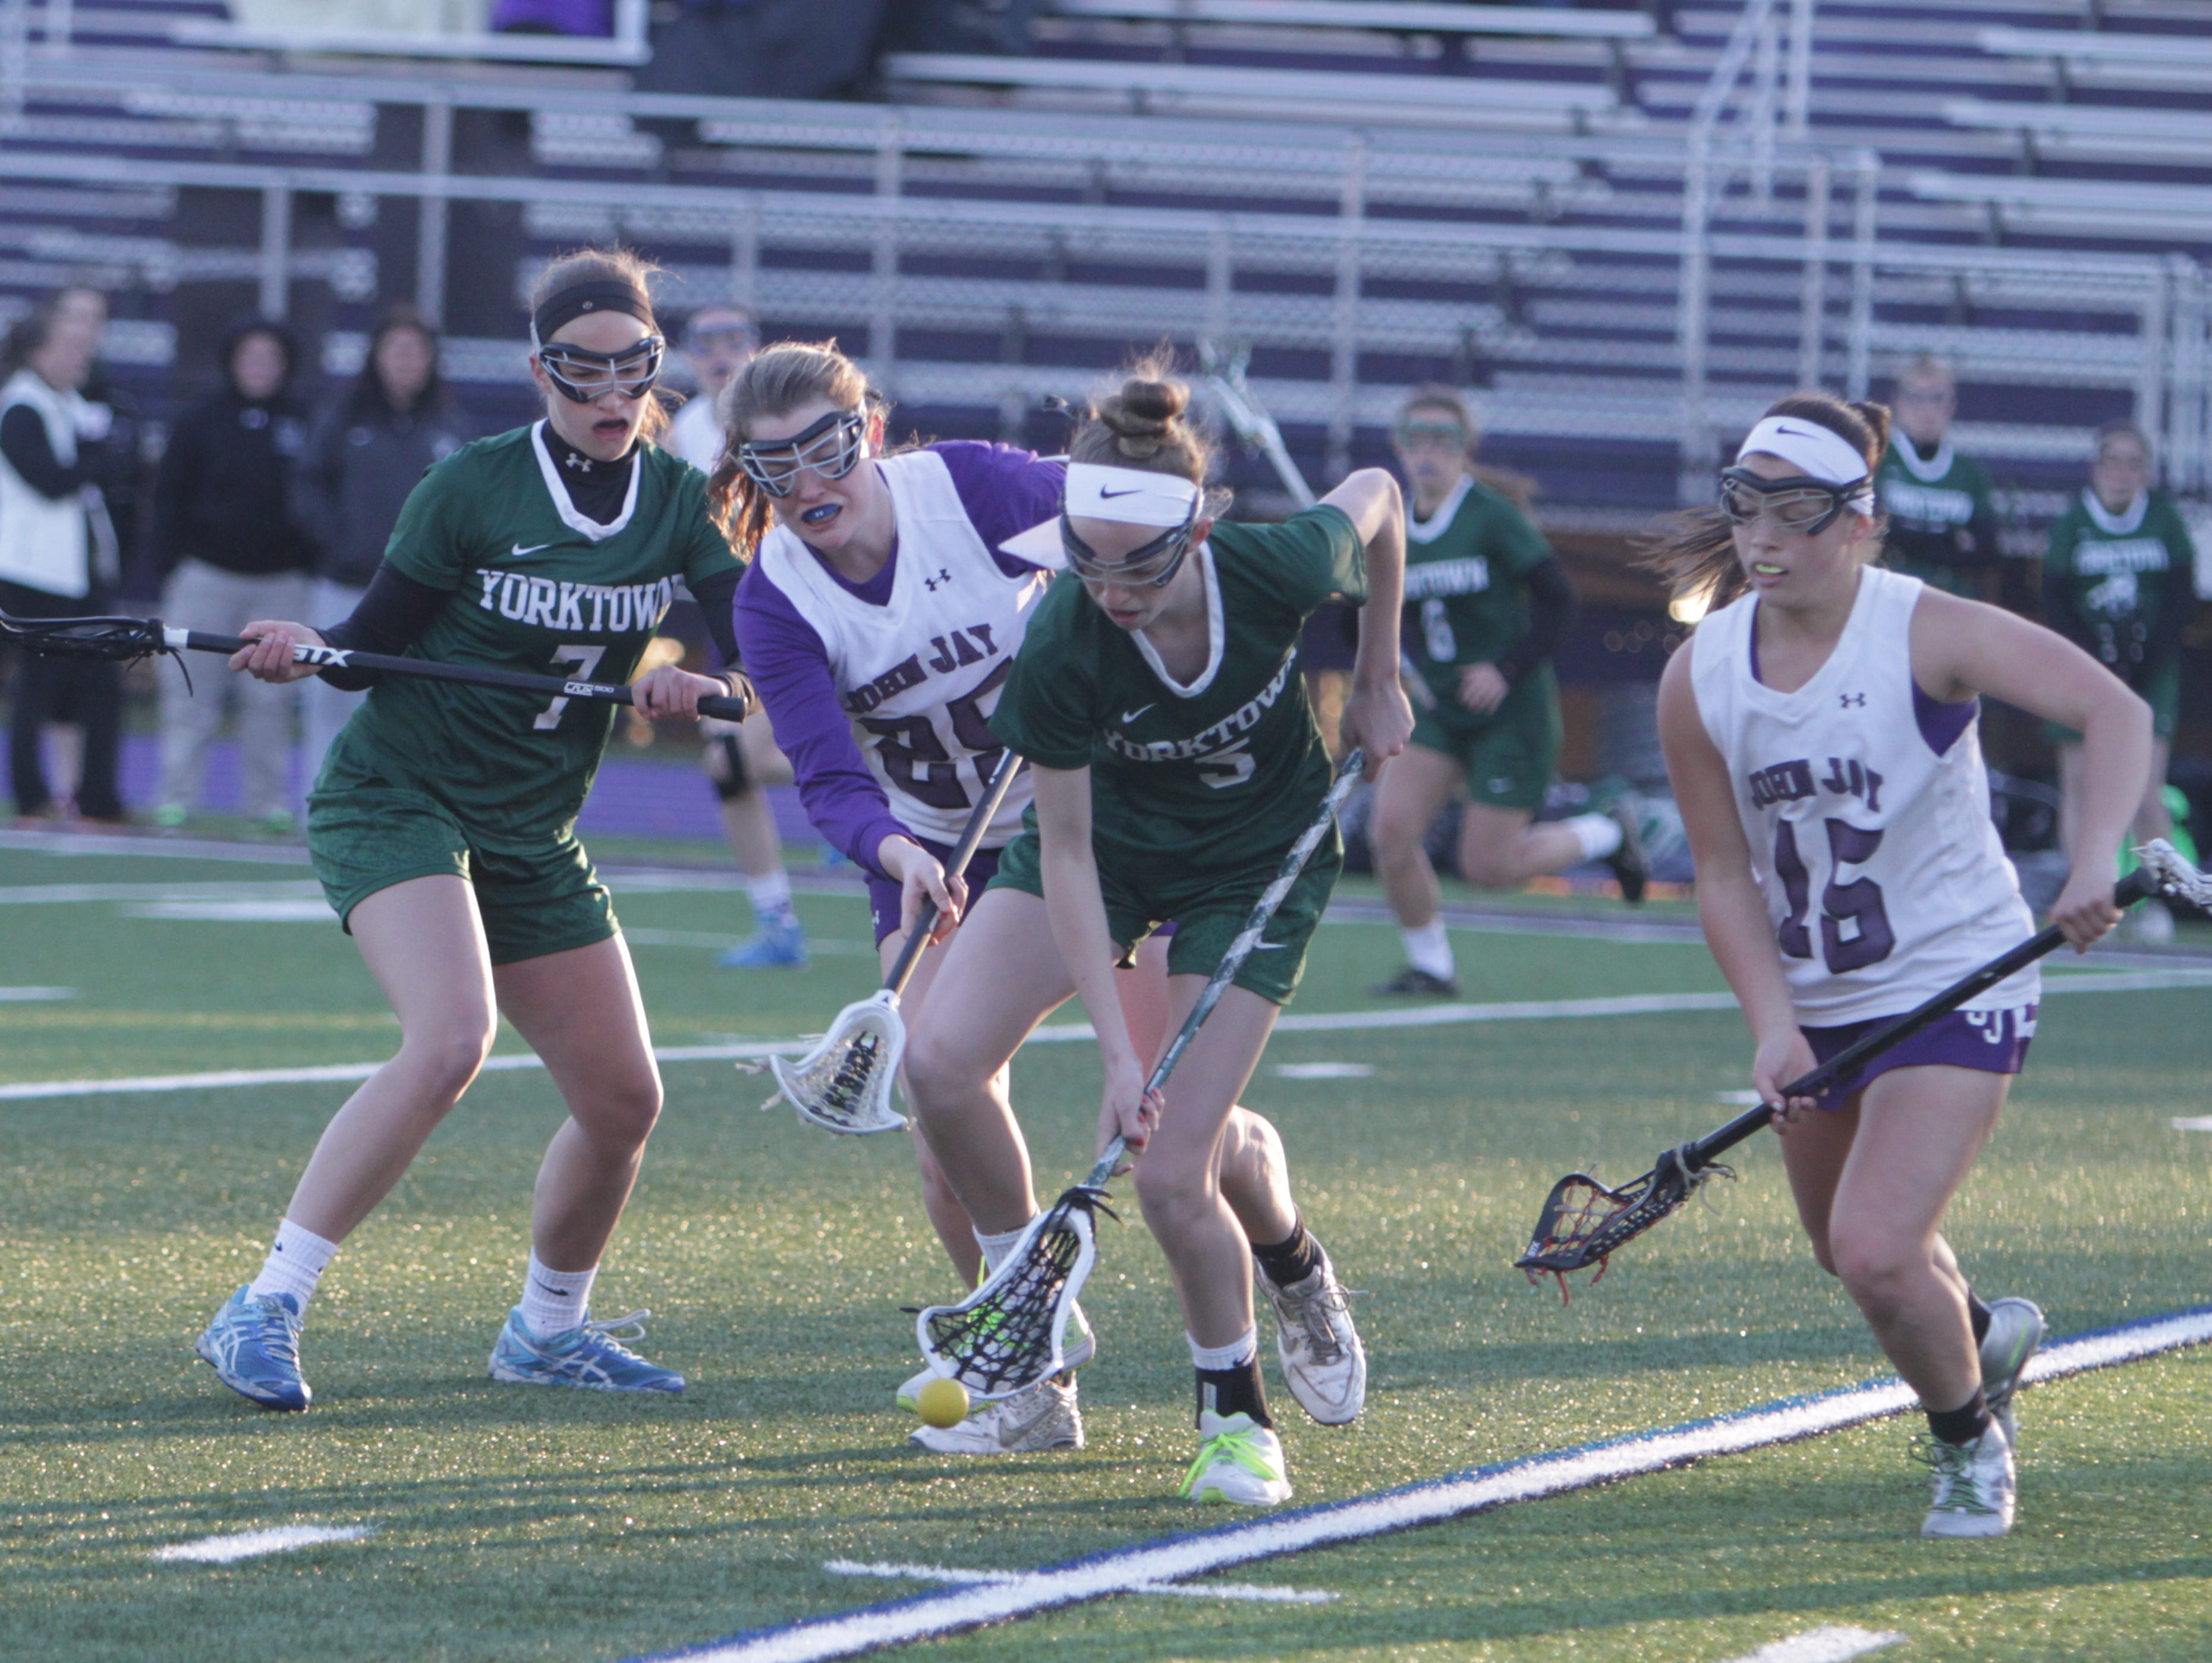 Yorktown's Ciara Frawley (green) attempts to scoop up a ground ball ahead of John Jay's Danielle Galea (25) during a Section 1 girls lacrosse game at John Jay-Cross River High School on Tuesday, March 29th, 2016. Yorktown won 15-5.